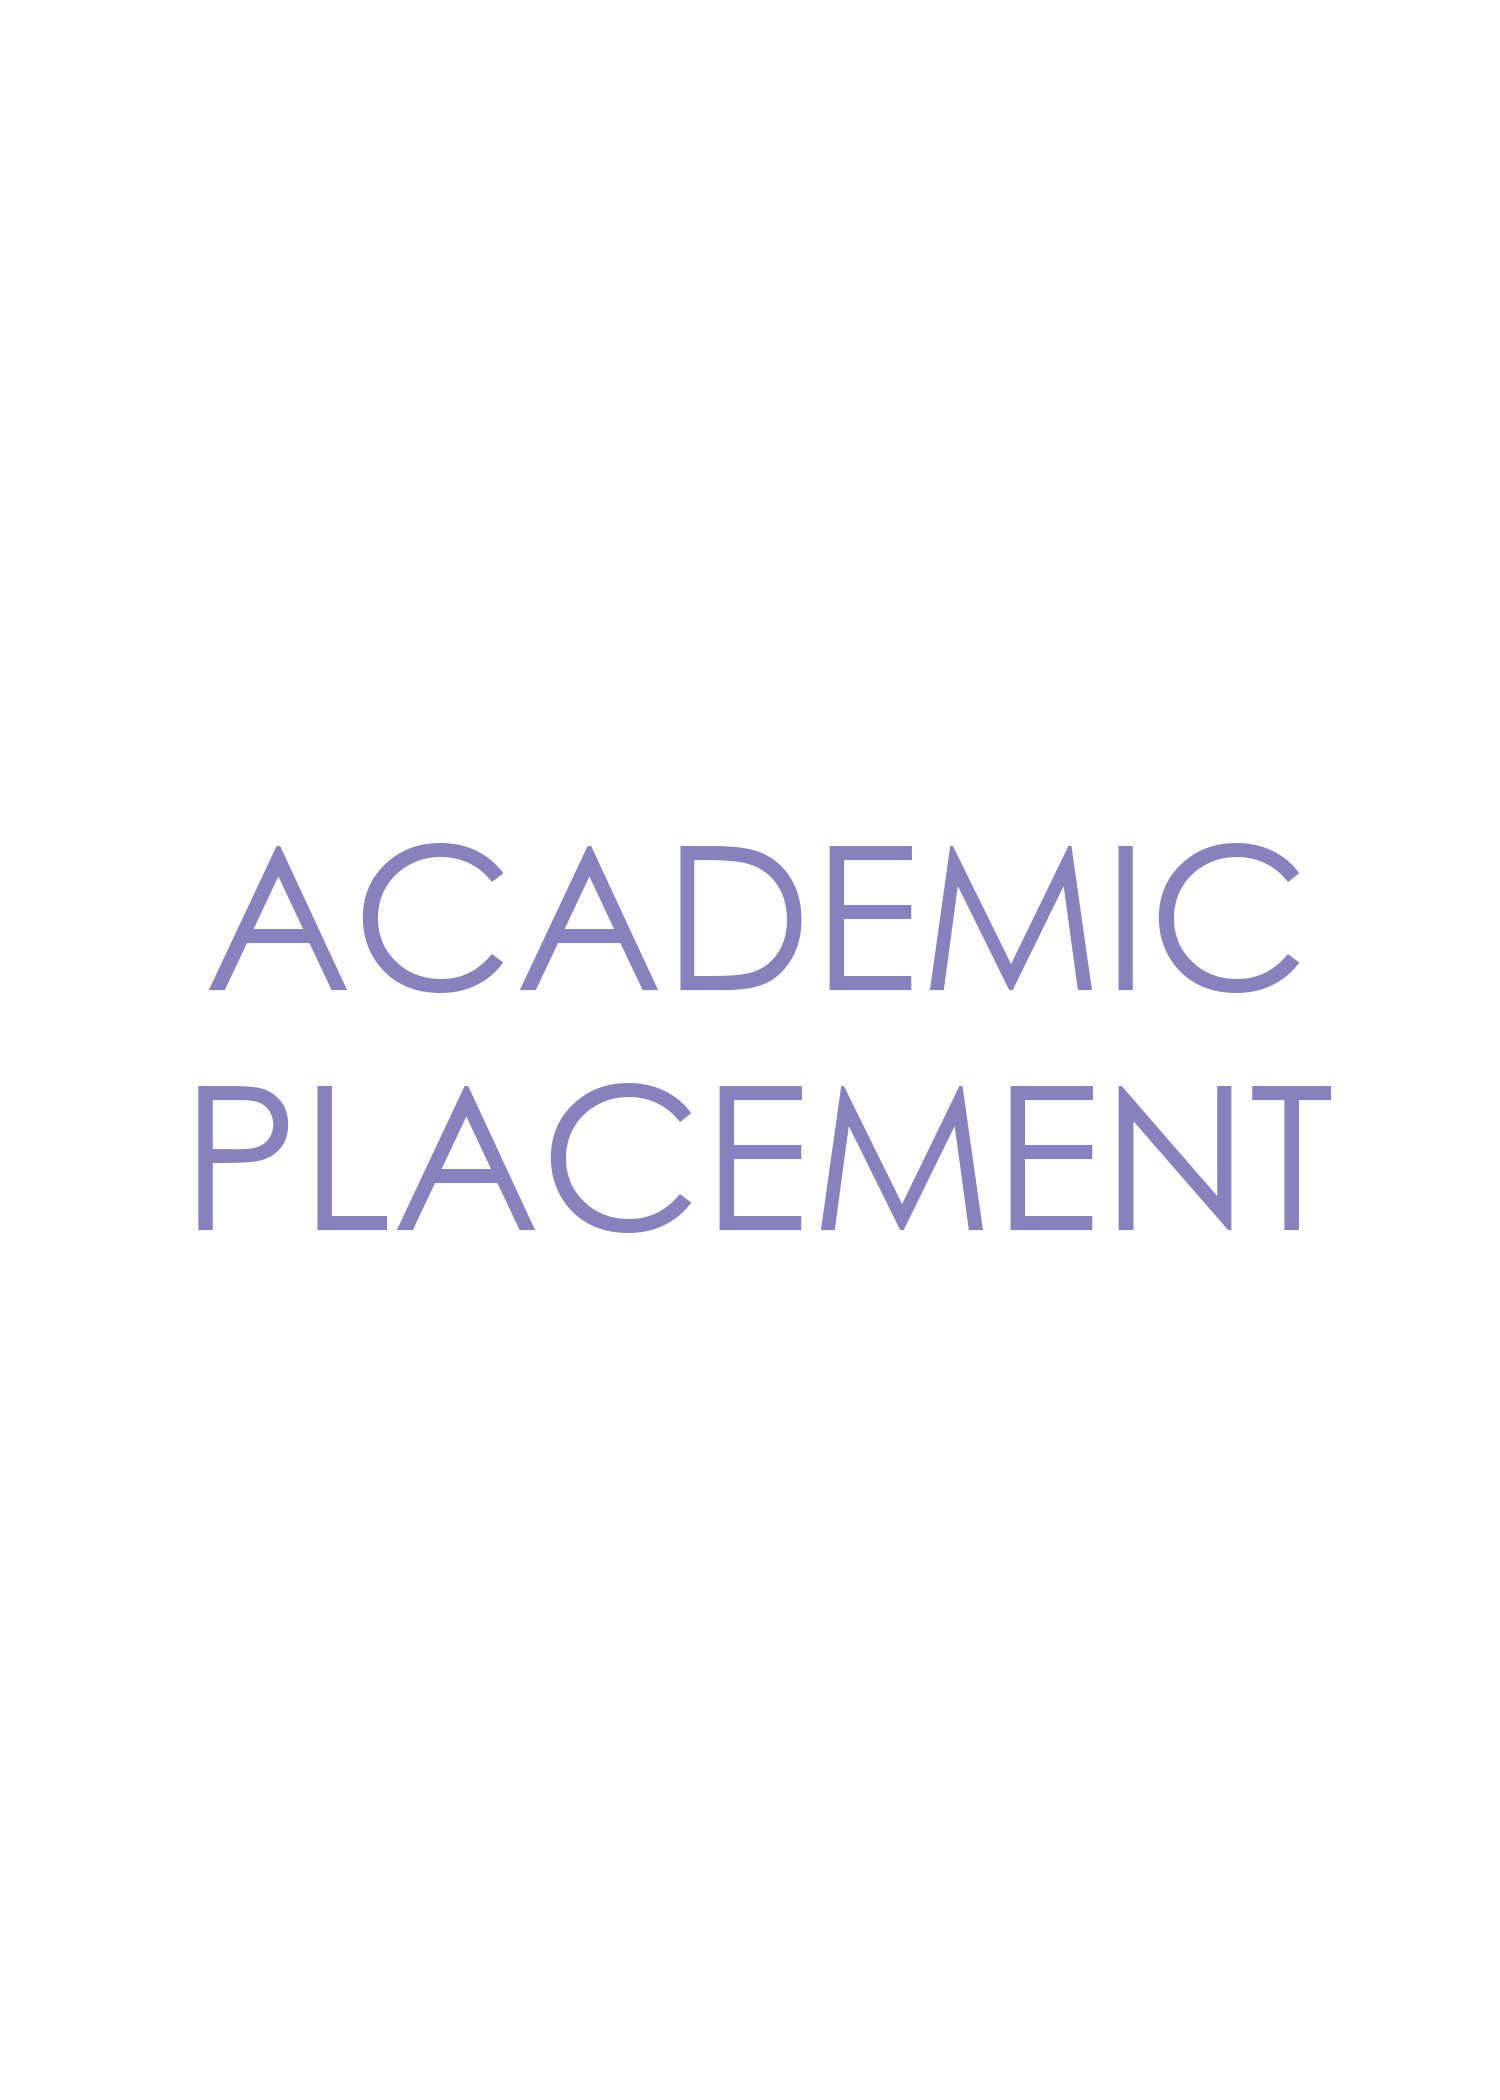 ACADEMIC PLACEMENT.png